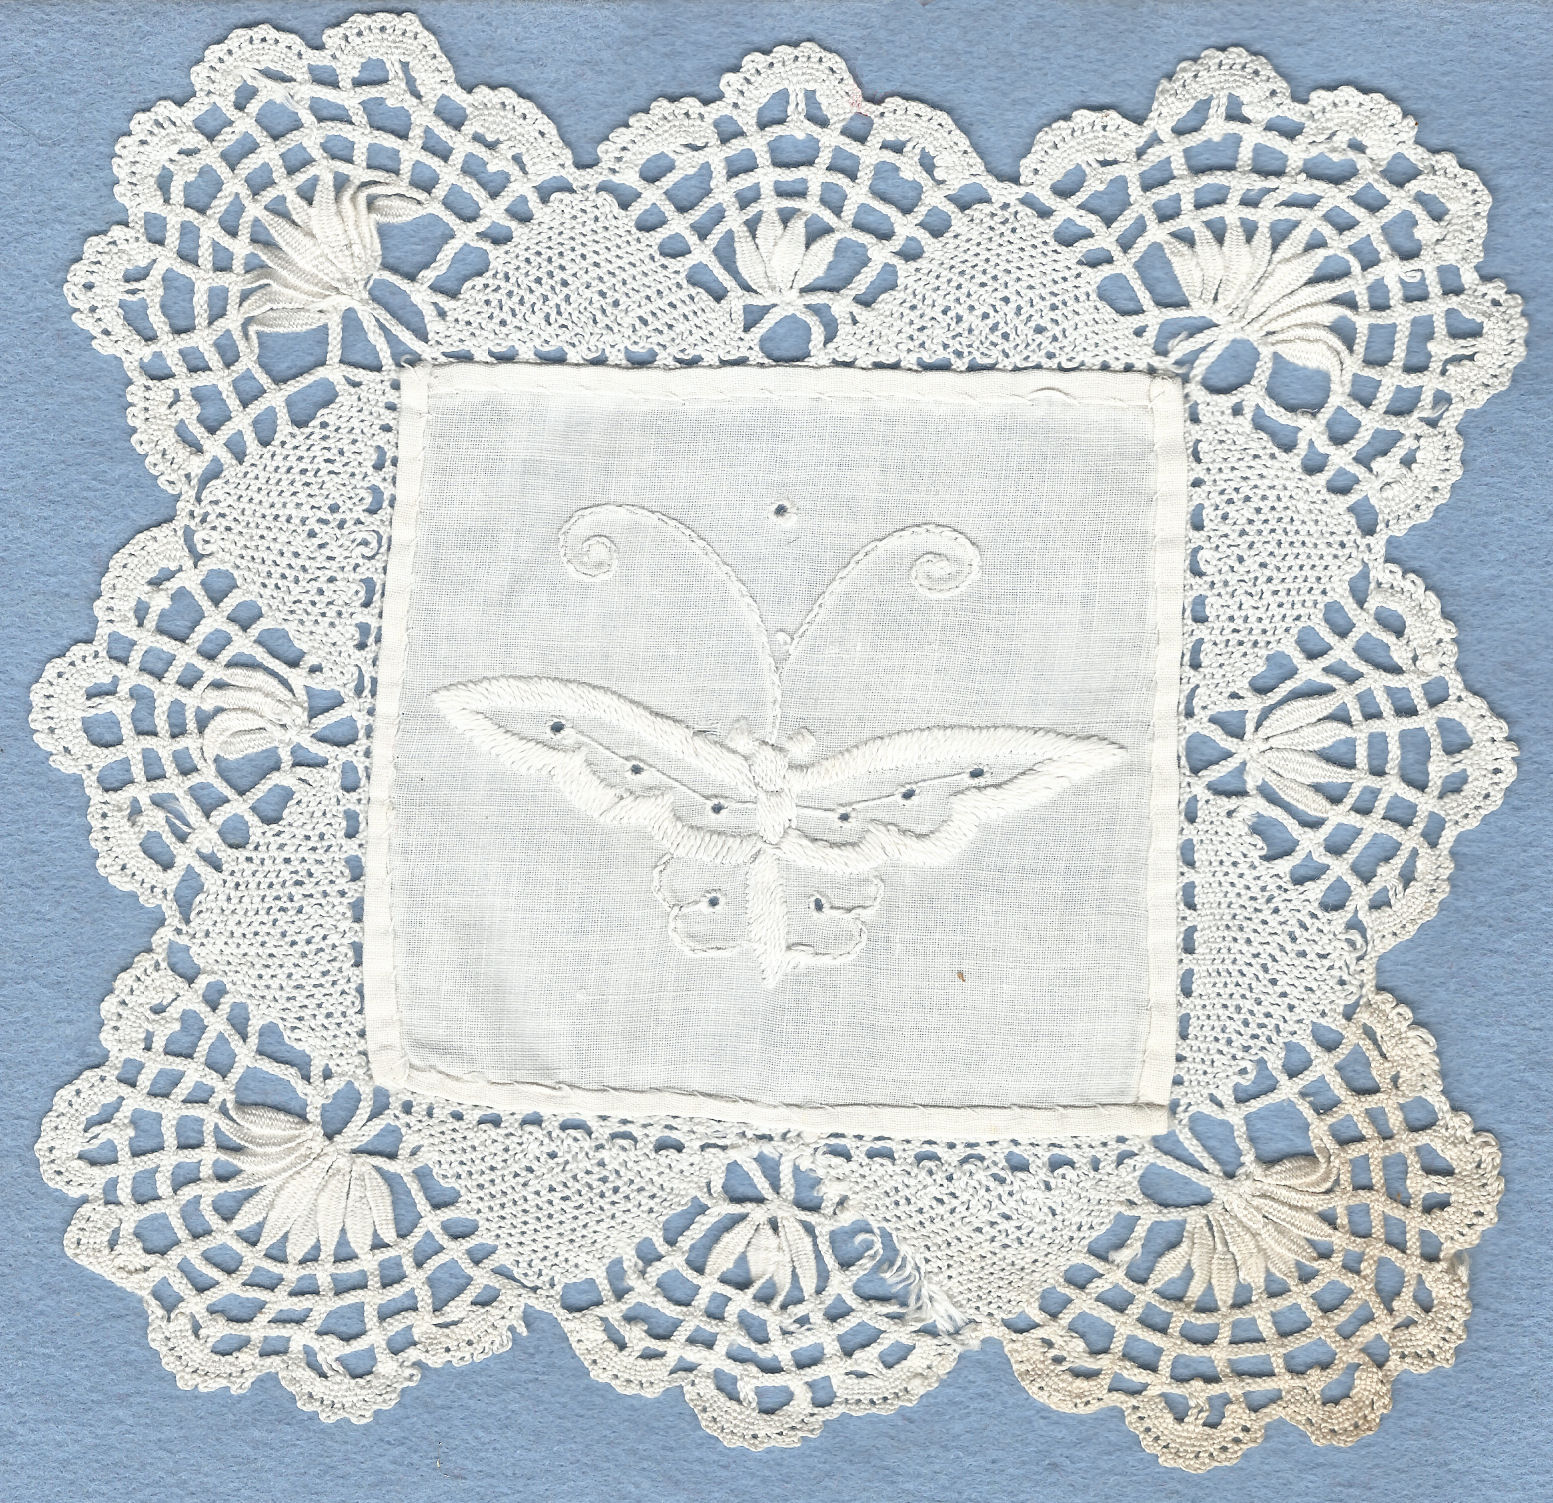 Mat with Cluny lace edging. By Joedkins (Own work) Retrieved from Wikimedia Commons